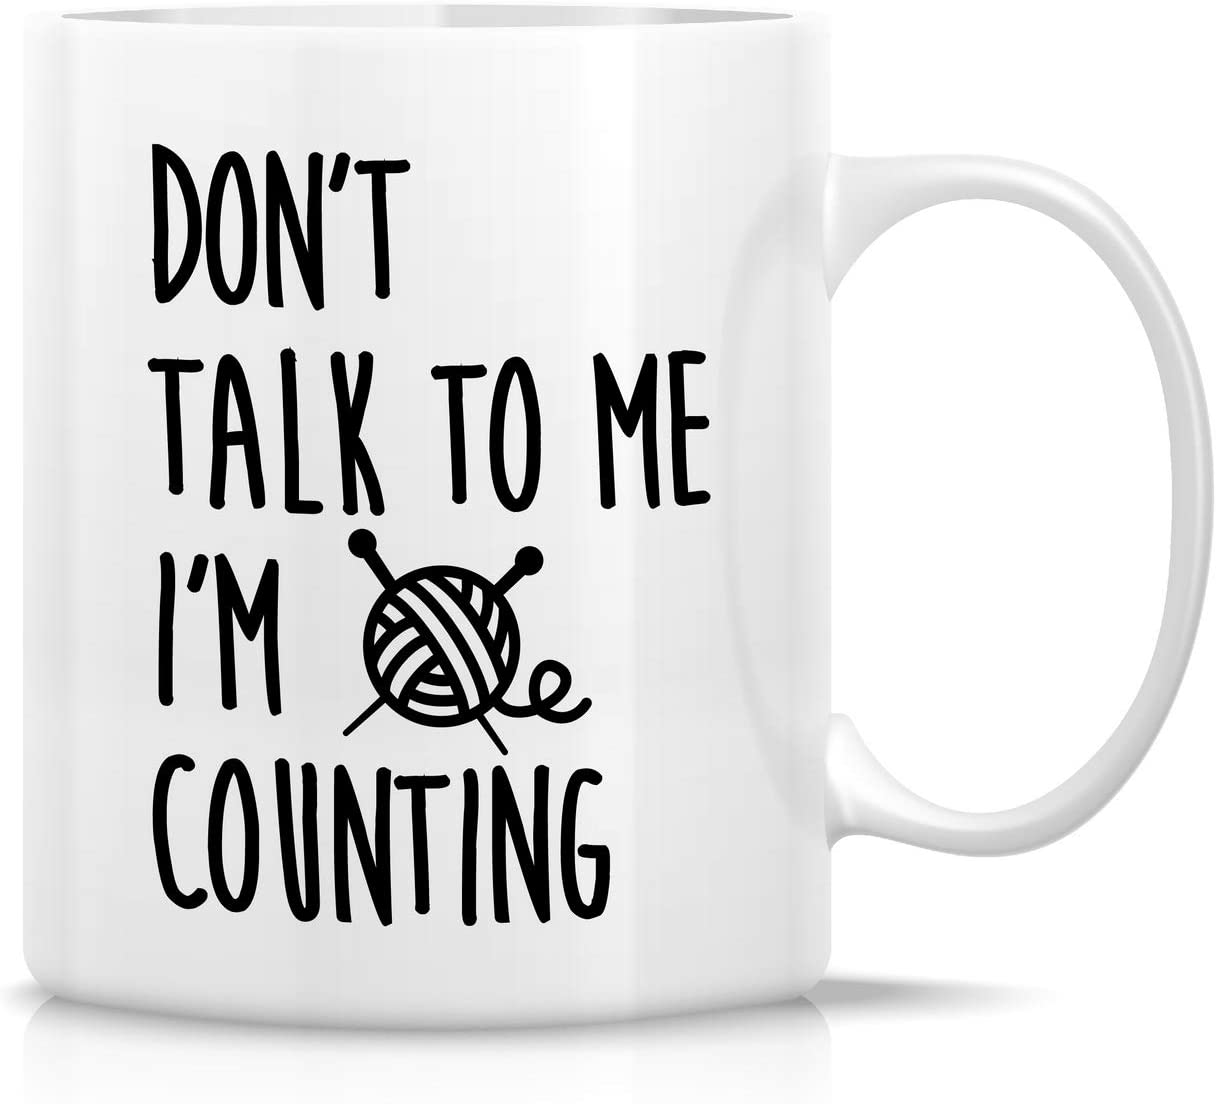 Retreez Funny Mug - Don't Talk To Me I'm Counting Knit Knitting Crochet 11 Oz Ceramic Coffee Mugs - Funny, Sarcasm, Sarcastic, Inspirational birthday gift for friends, mom, mum, mama, mother day gift